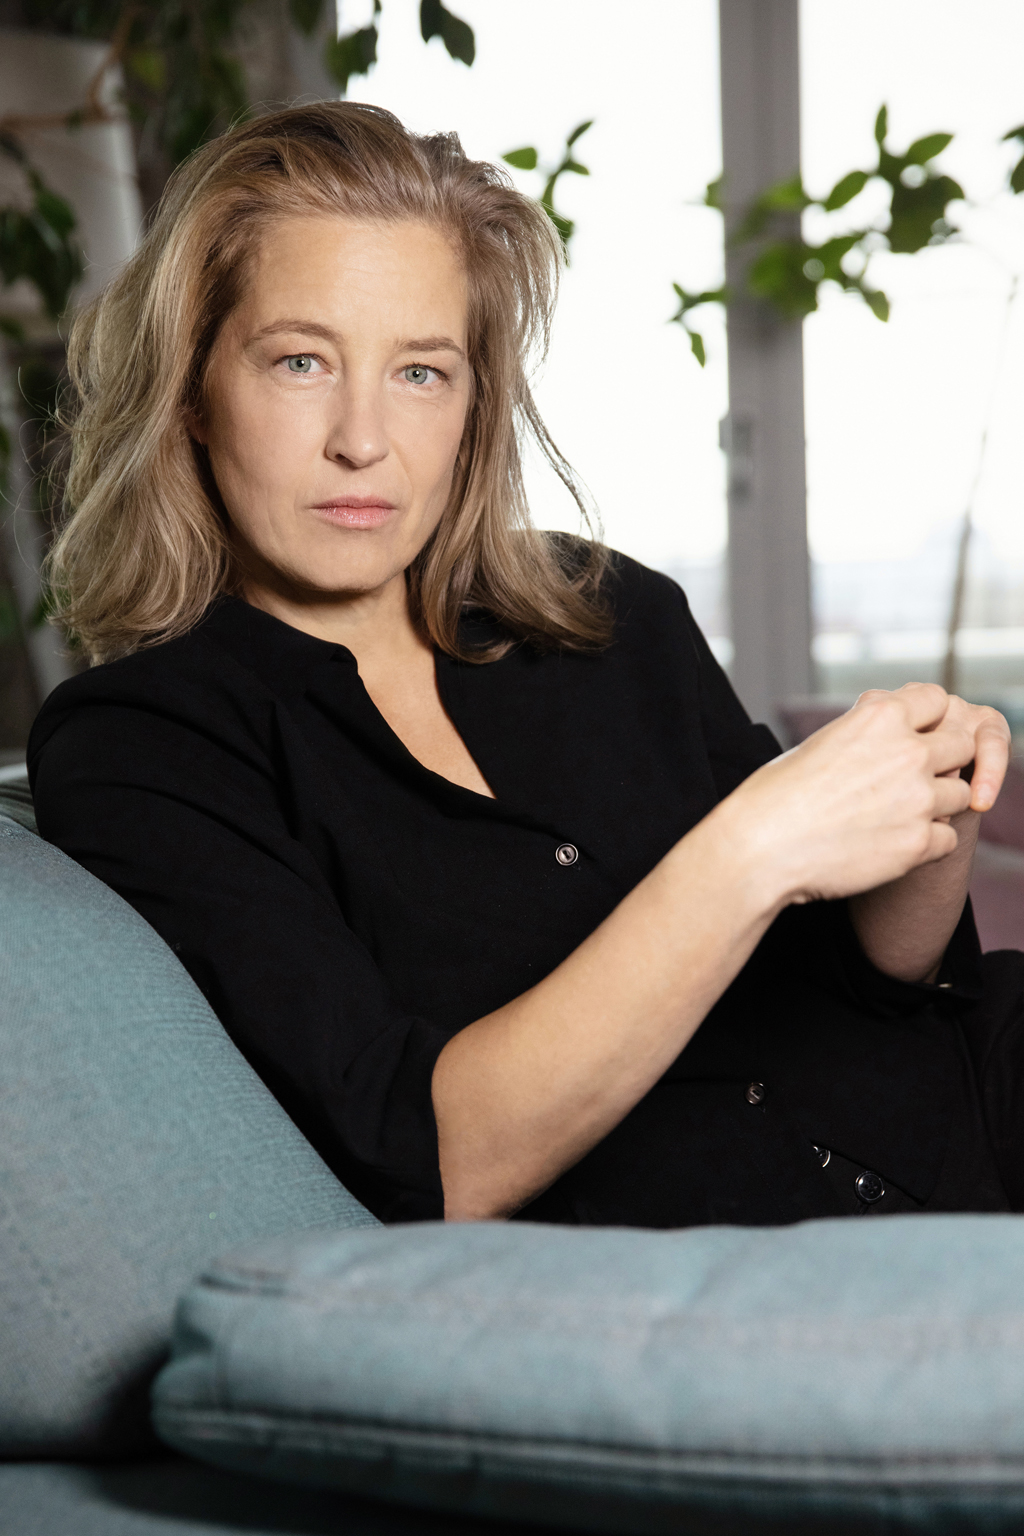 Sonja Hilberger (Photo © by Sven Görlich)